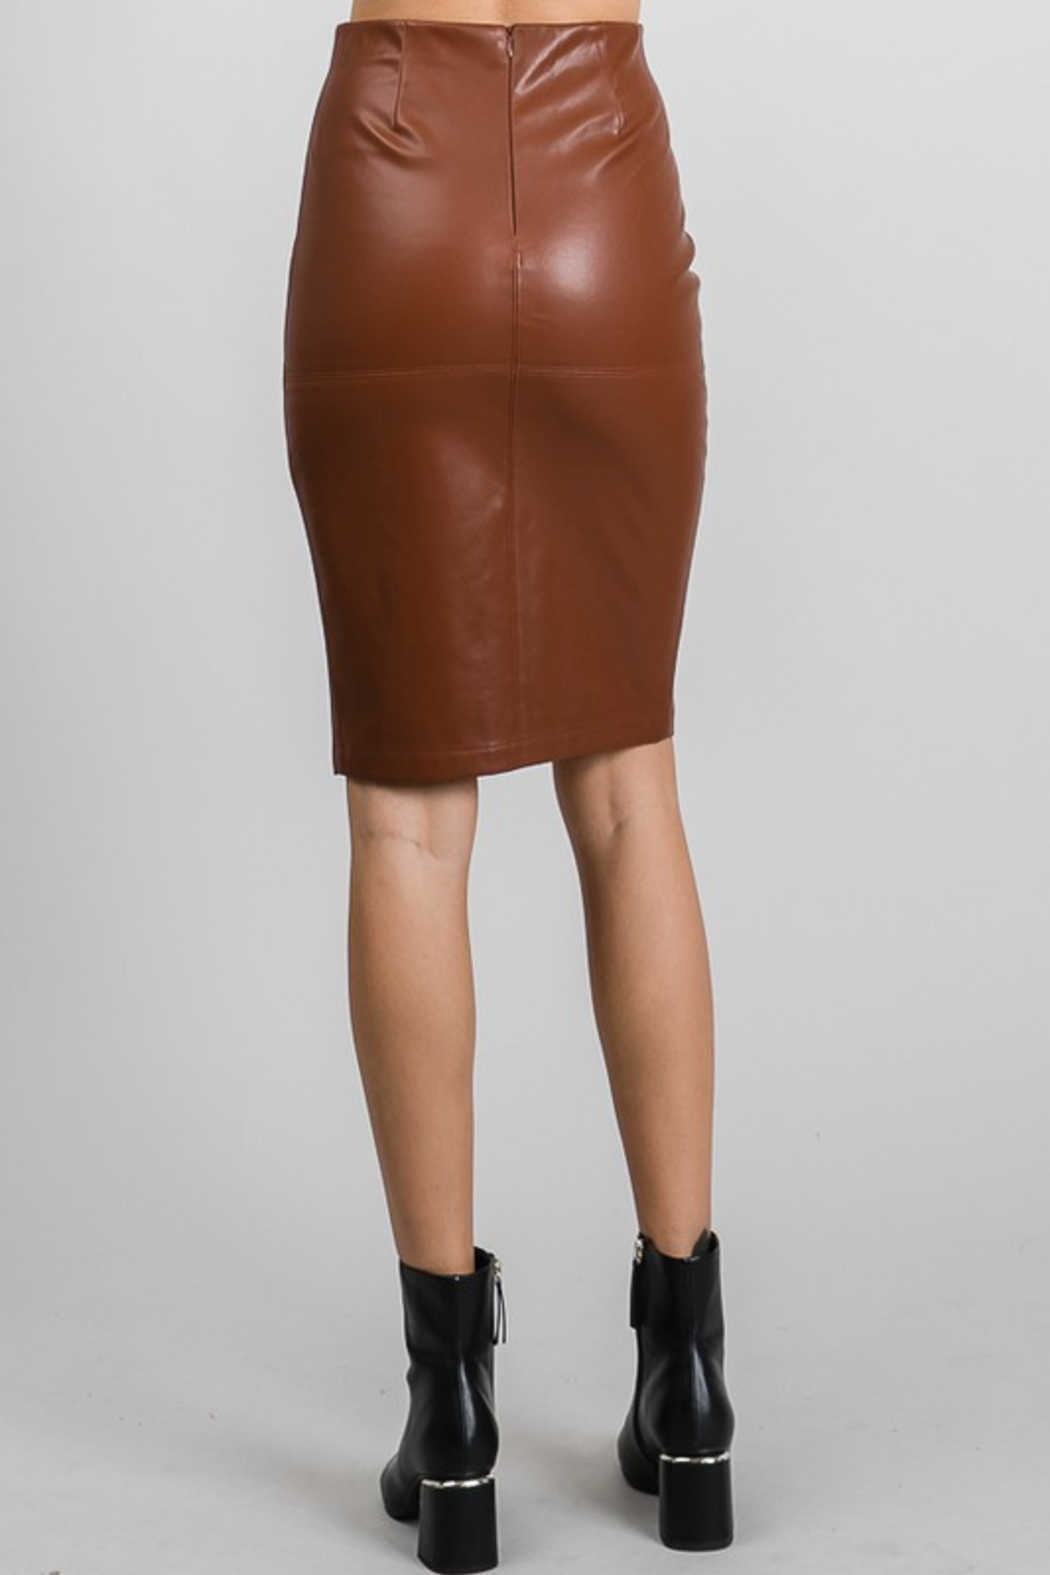 AAAAA Fashion Vegan Leather Pencil Skirt - Side Cropped Image